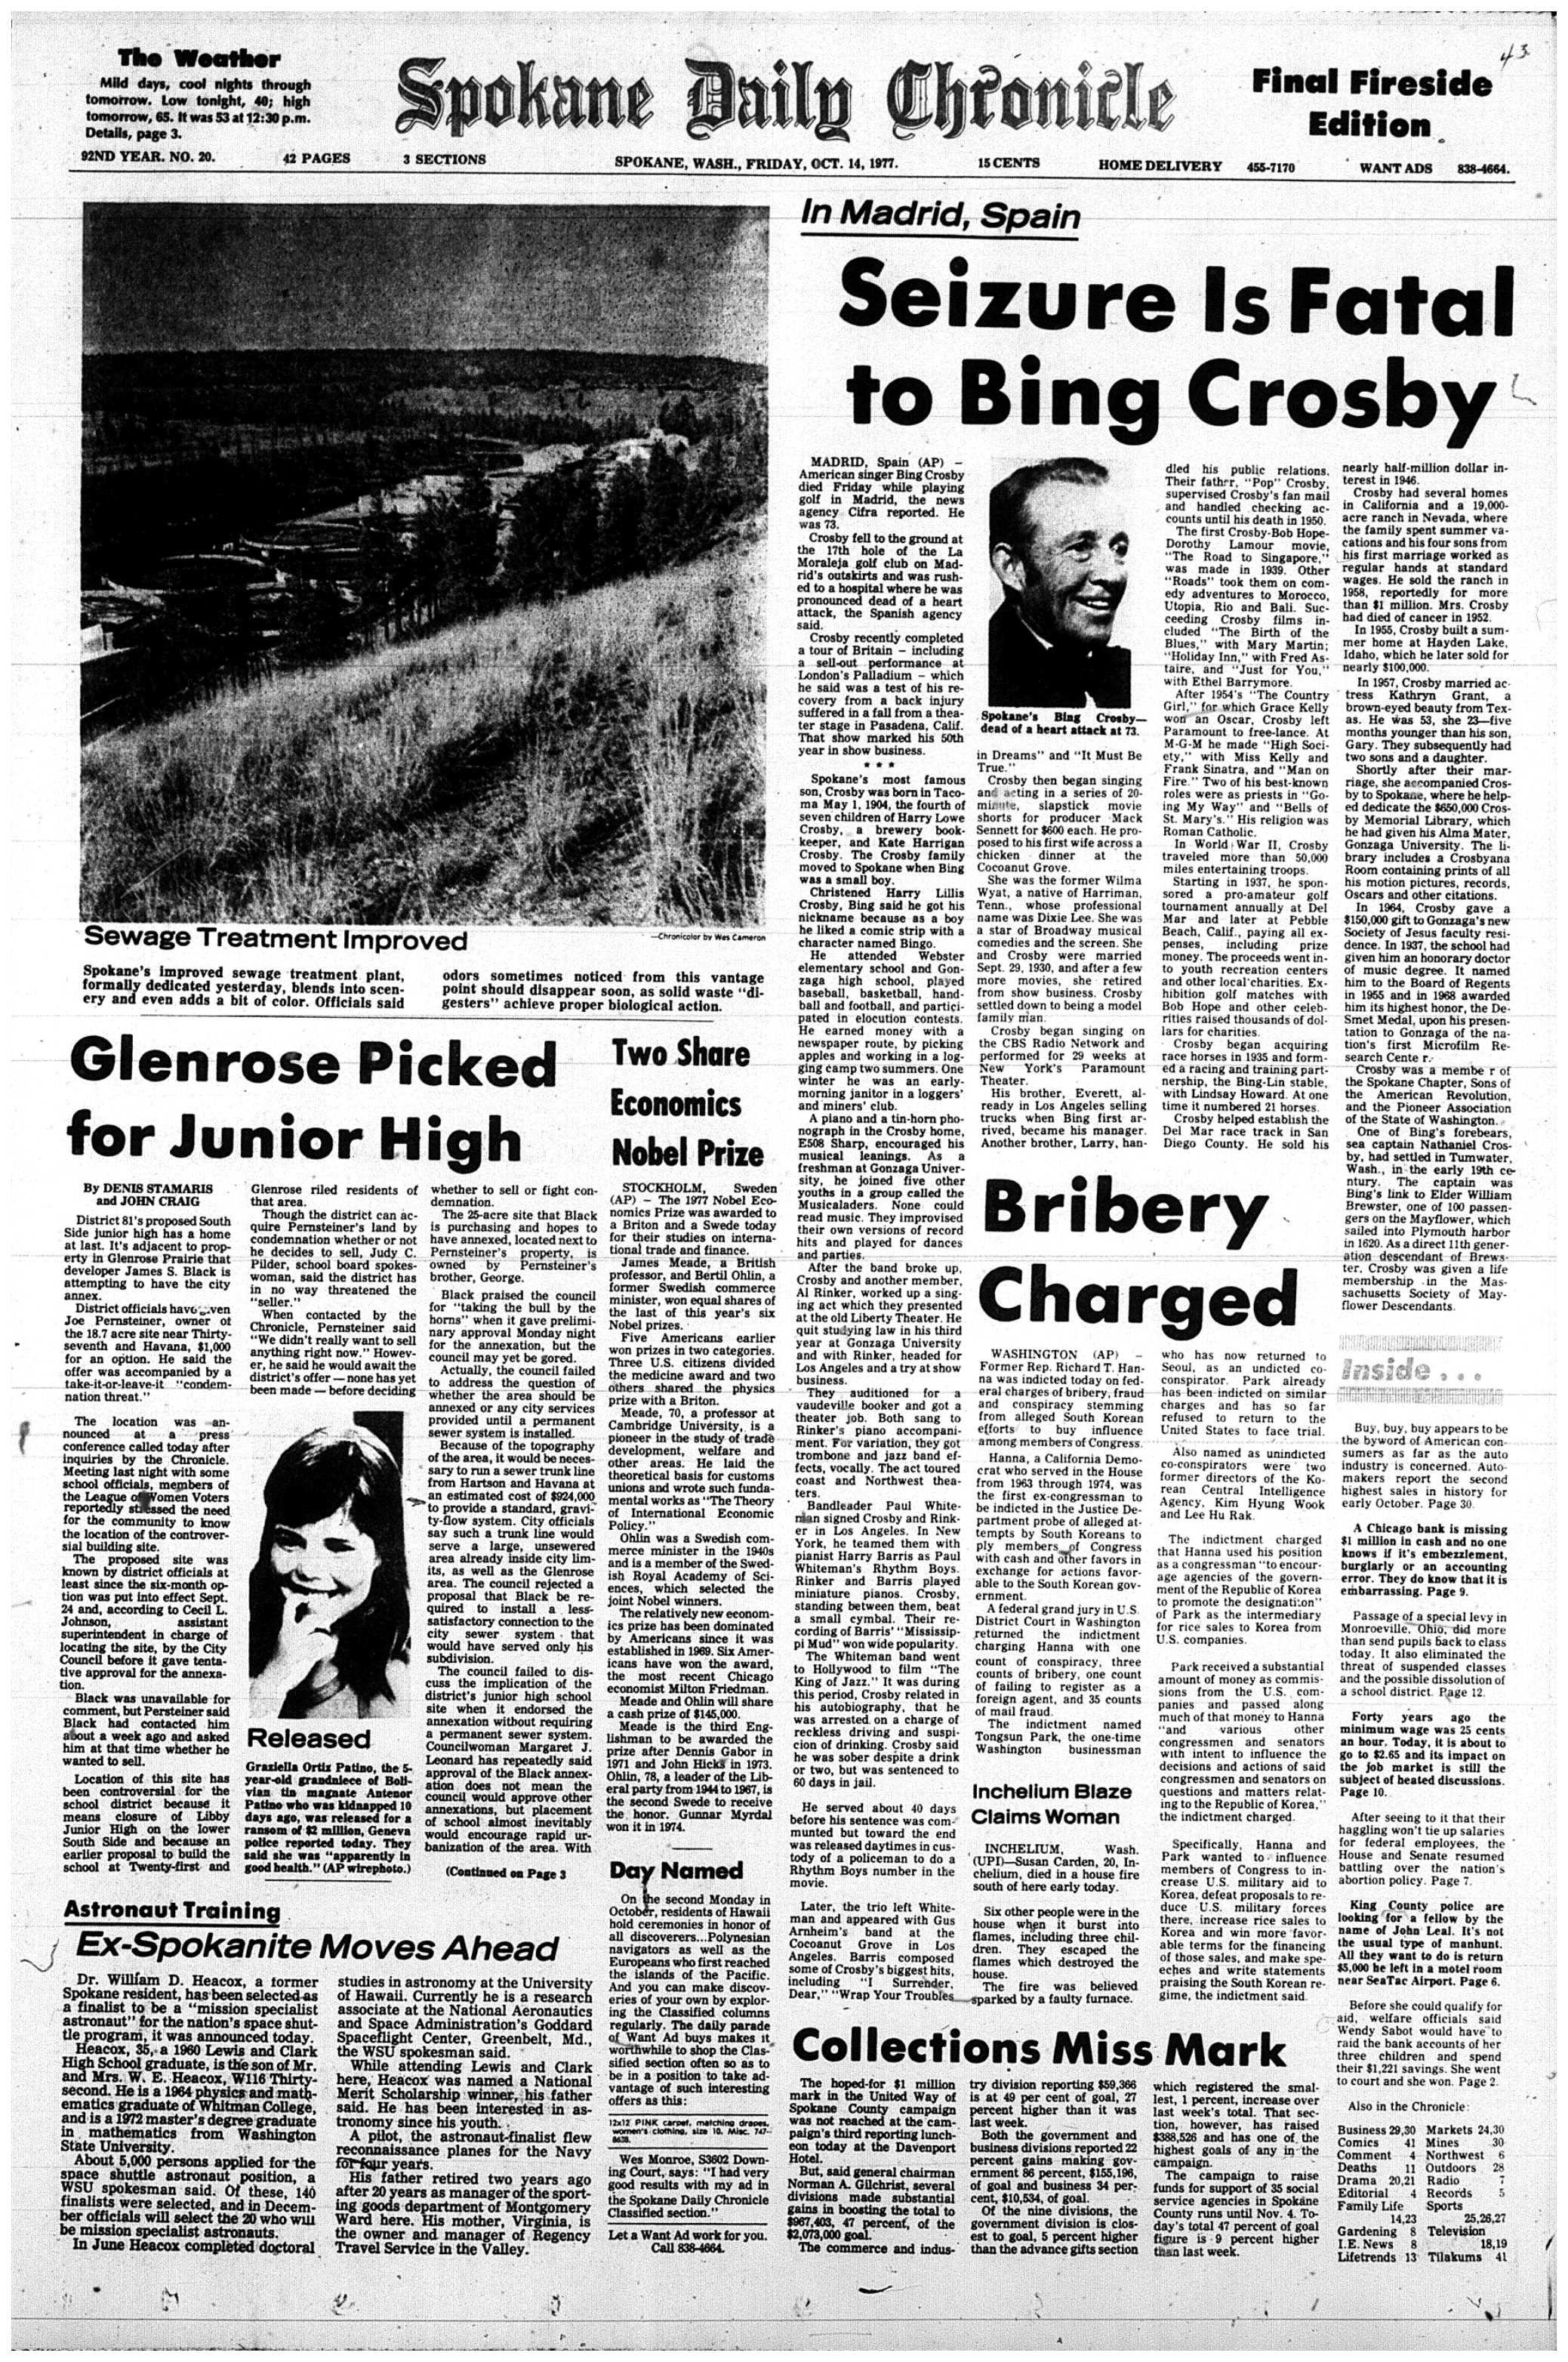 Bing Crosby's 1977 obituary as it appeared in the Spokane